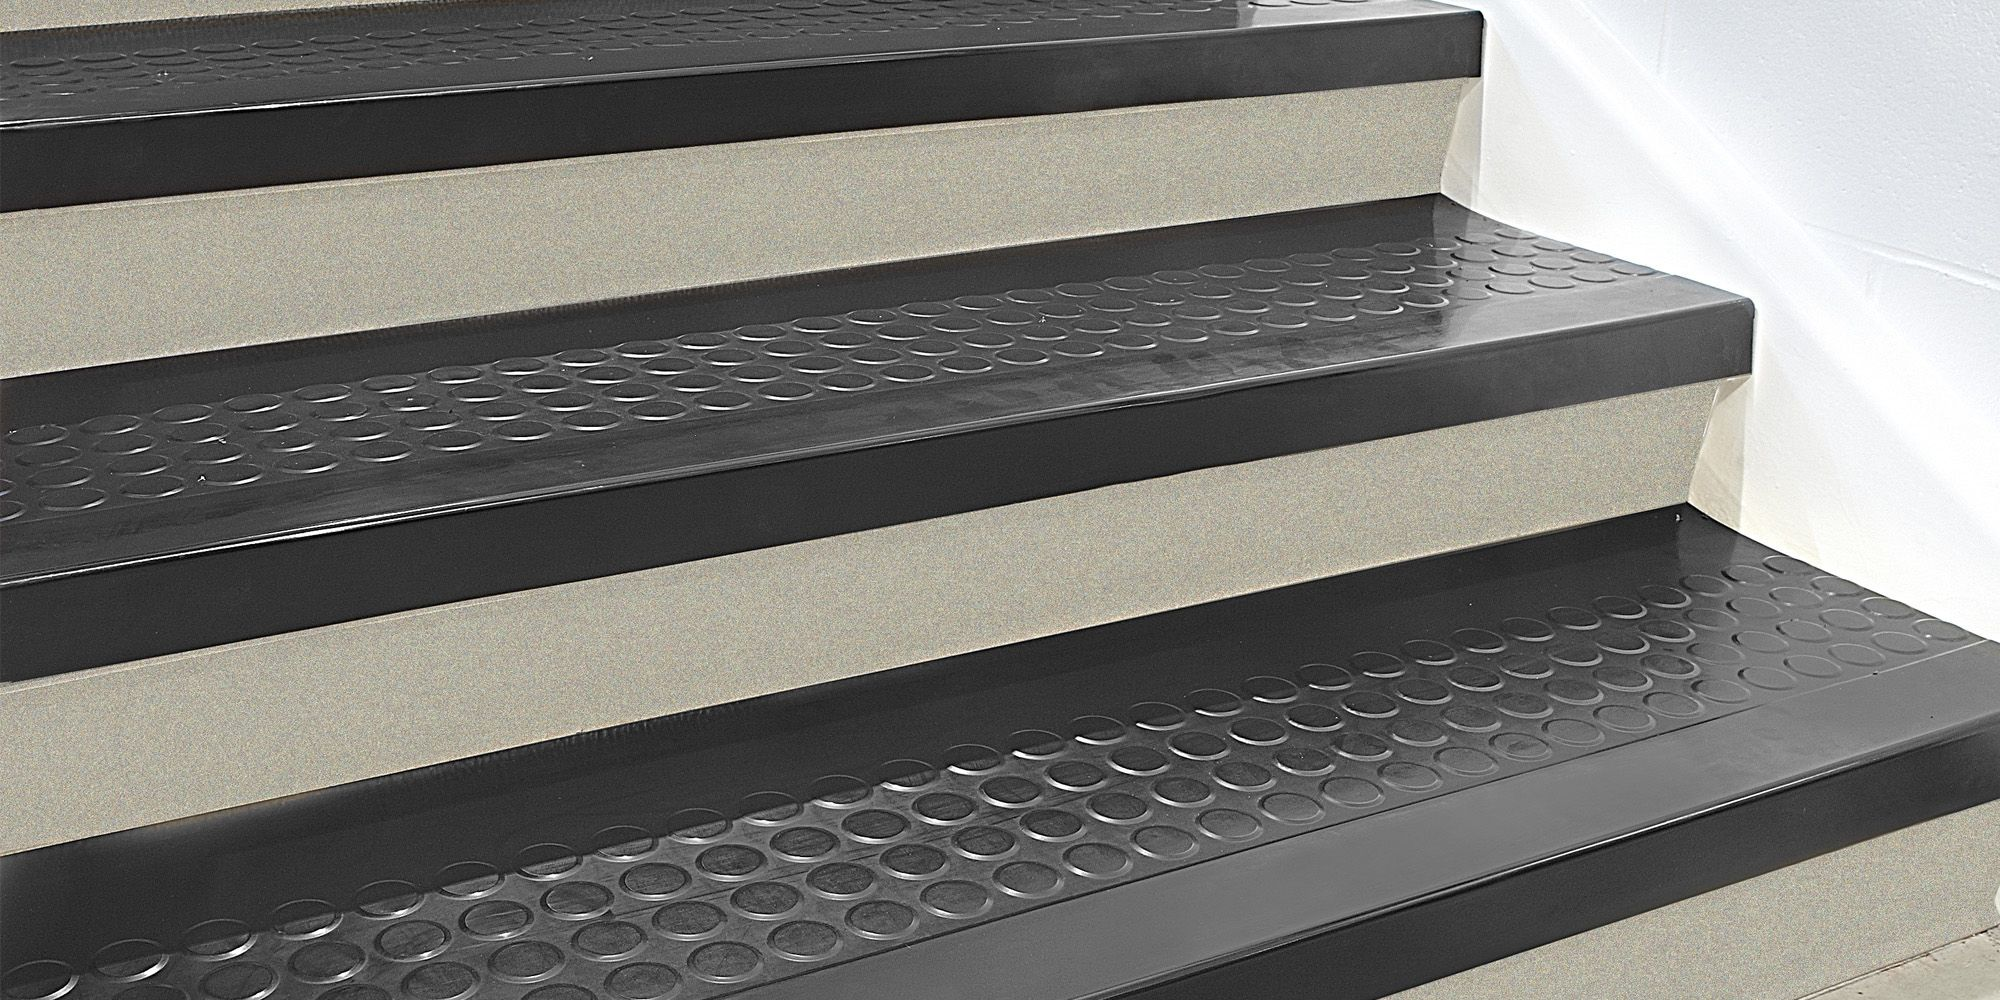 Stair Treads Rubber Stair Treads Vinyl Stair Treads In Stock